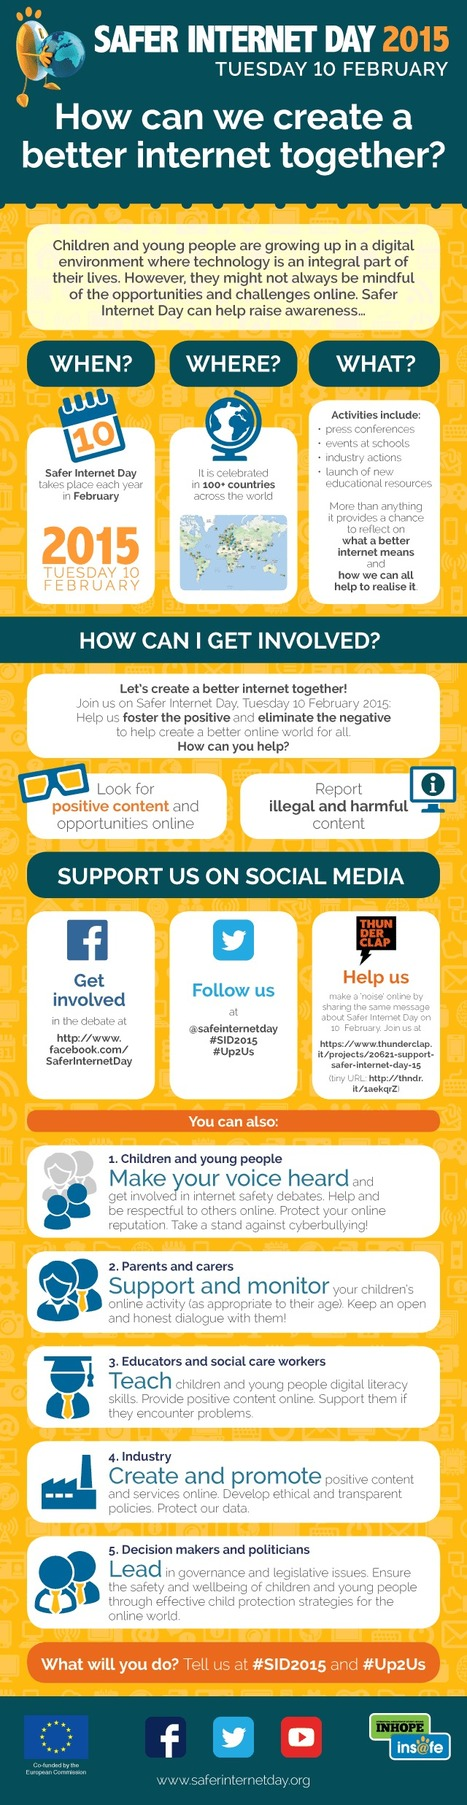 How can WE create a BETTER internet together!? | Infographic | Linking Literacy & Learning: Research, Reflection, and Practice | Scoop.it